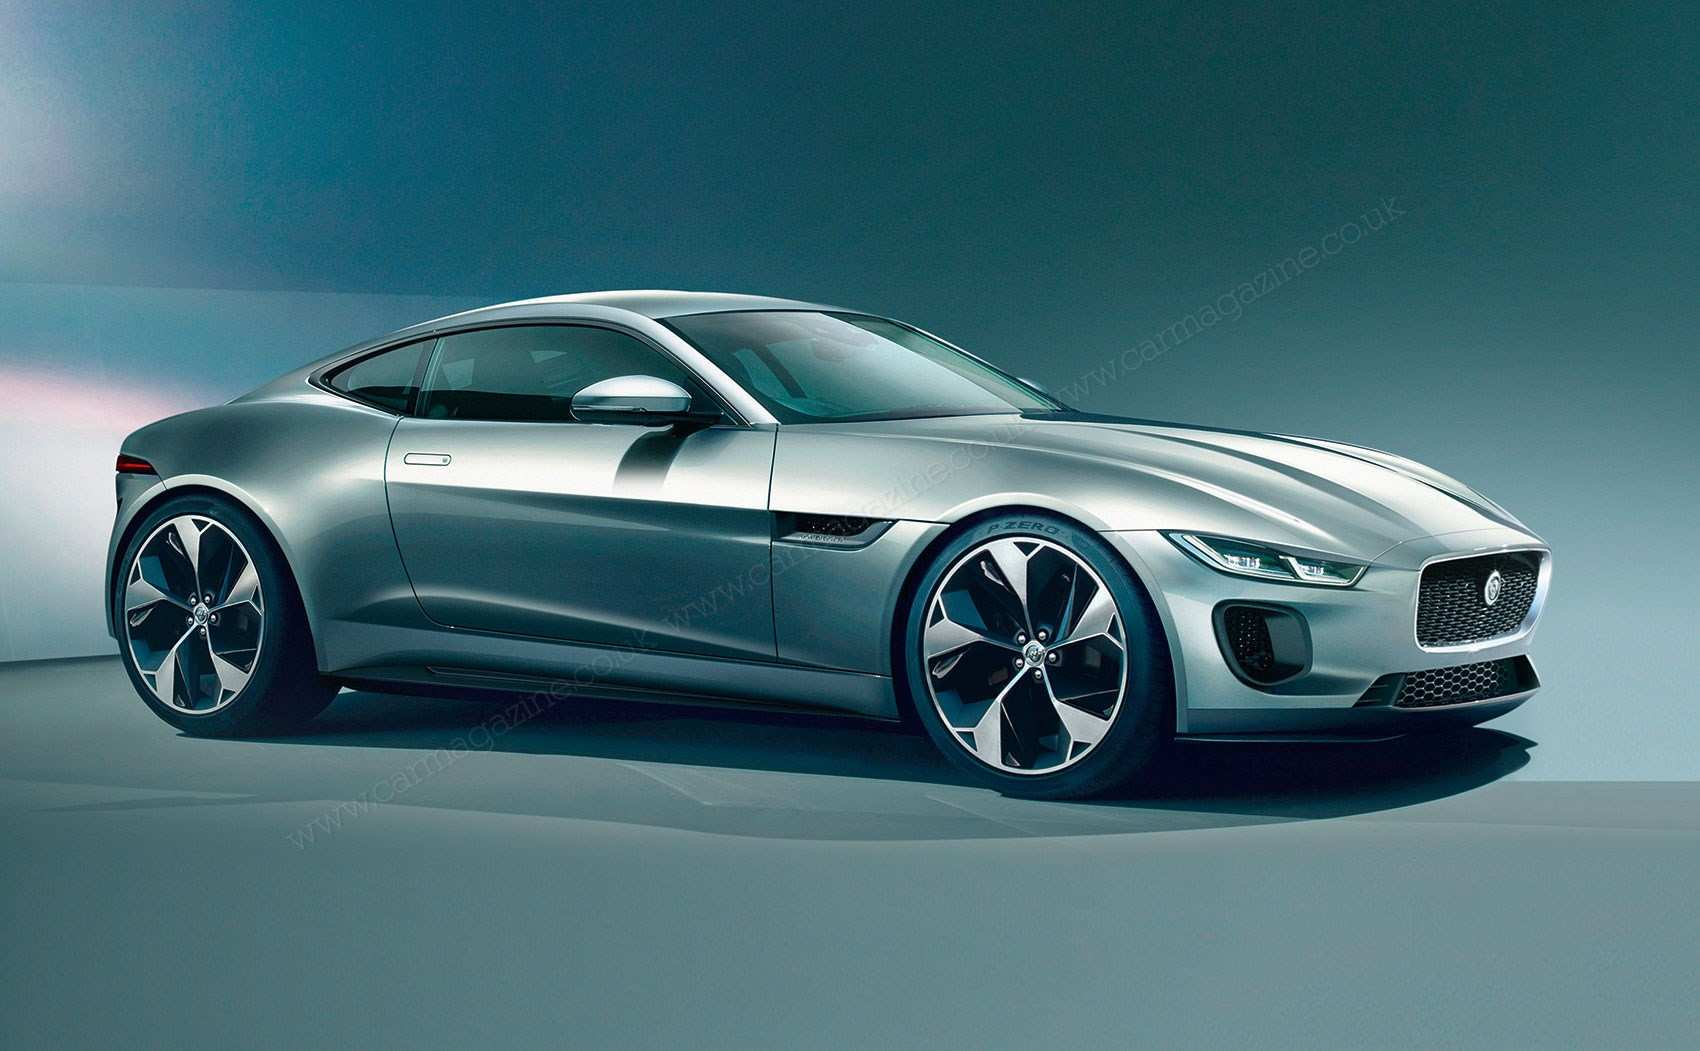 40 New 2020 Jaguar F Type Redesign and Concept for 2020 Jaguar F Type